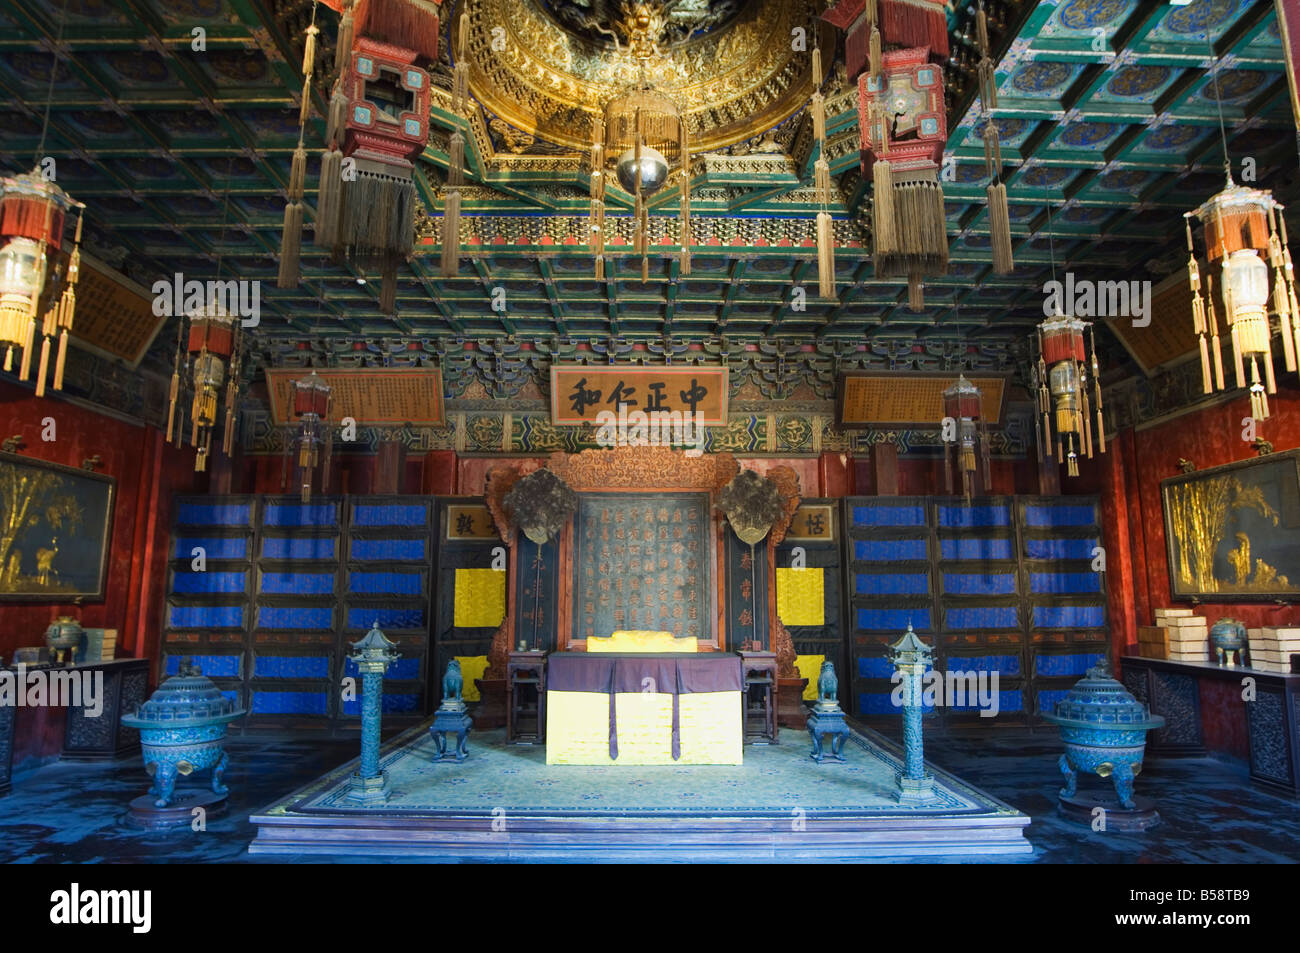 Yang Xin Dian (Hall of Mental Cultivation) dating from 1537, at Zijin Cheng The Forbidden City Palace Museum, Beijing, - Stock Image